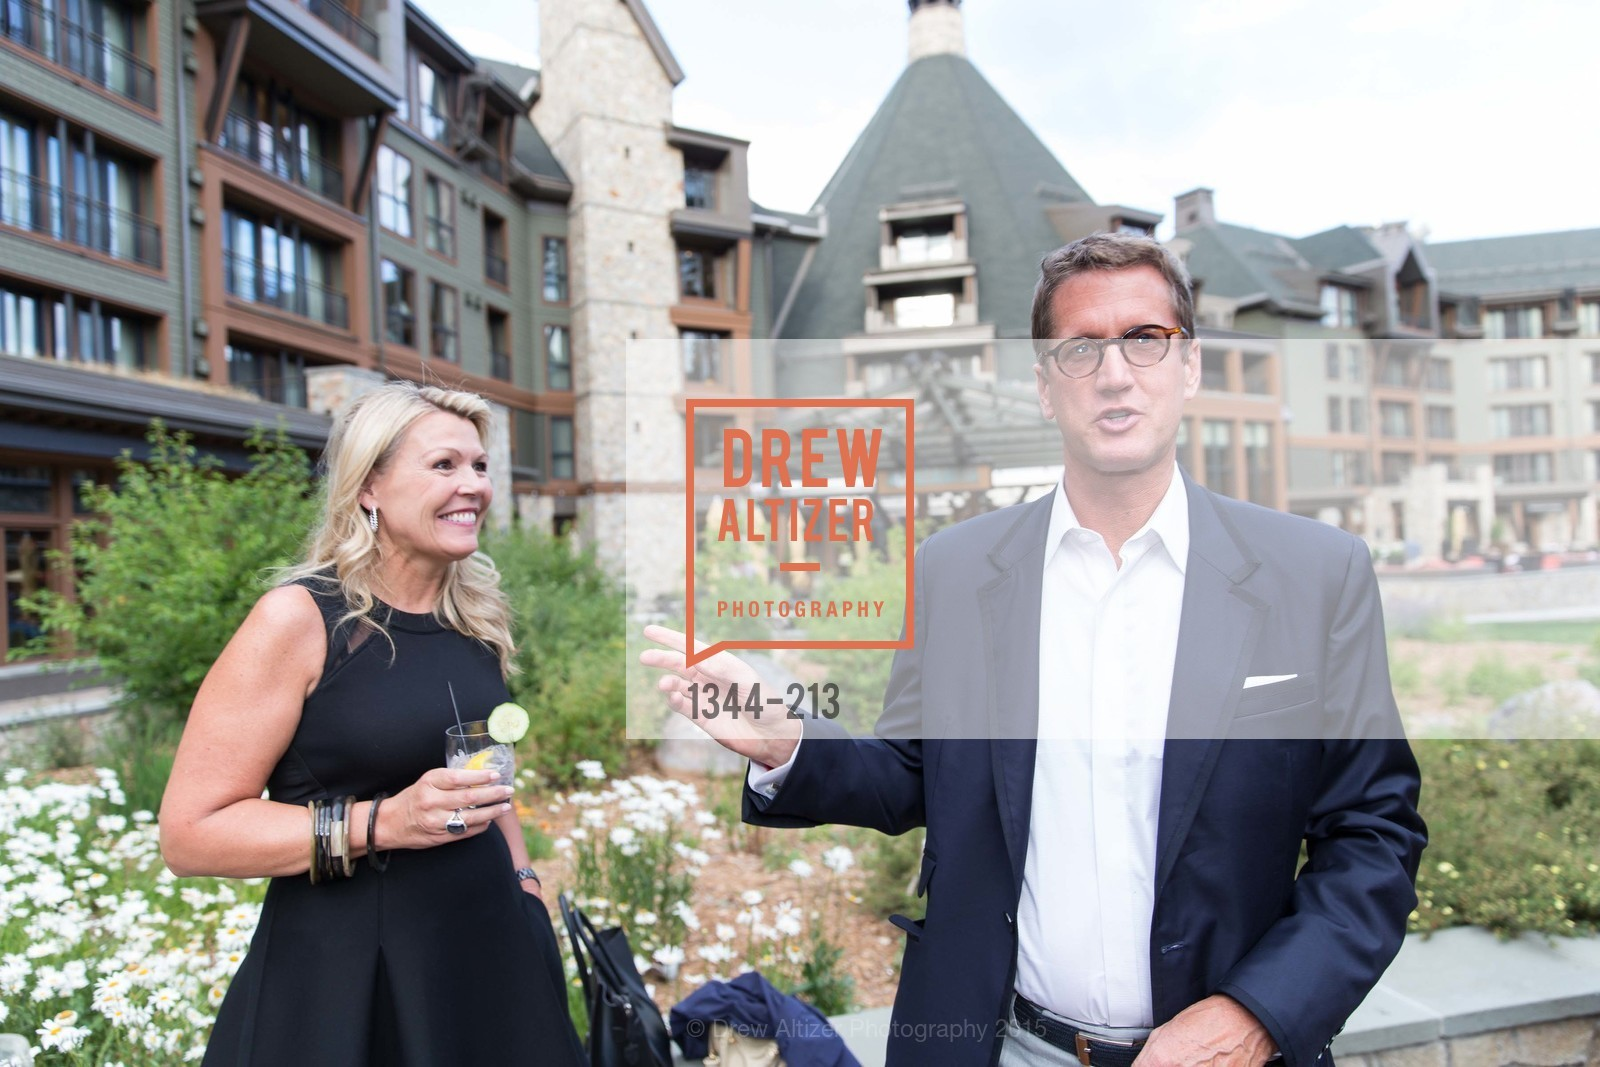 Catherine Macfee, Douglas Macfee, League to Save Lake Tahoe Sponsor Cocktail Party, Ritz-Carlton, Lake Tahoe, July 31st, 2015,Drew Altizer, Drew Altizer Photography, full-service agency, private events, San Francisco photographer, photographer california